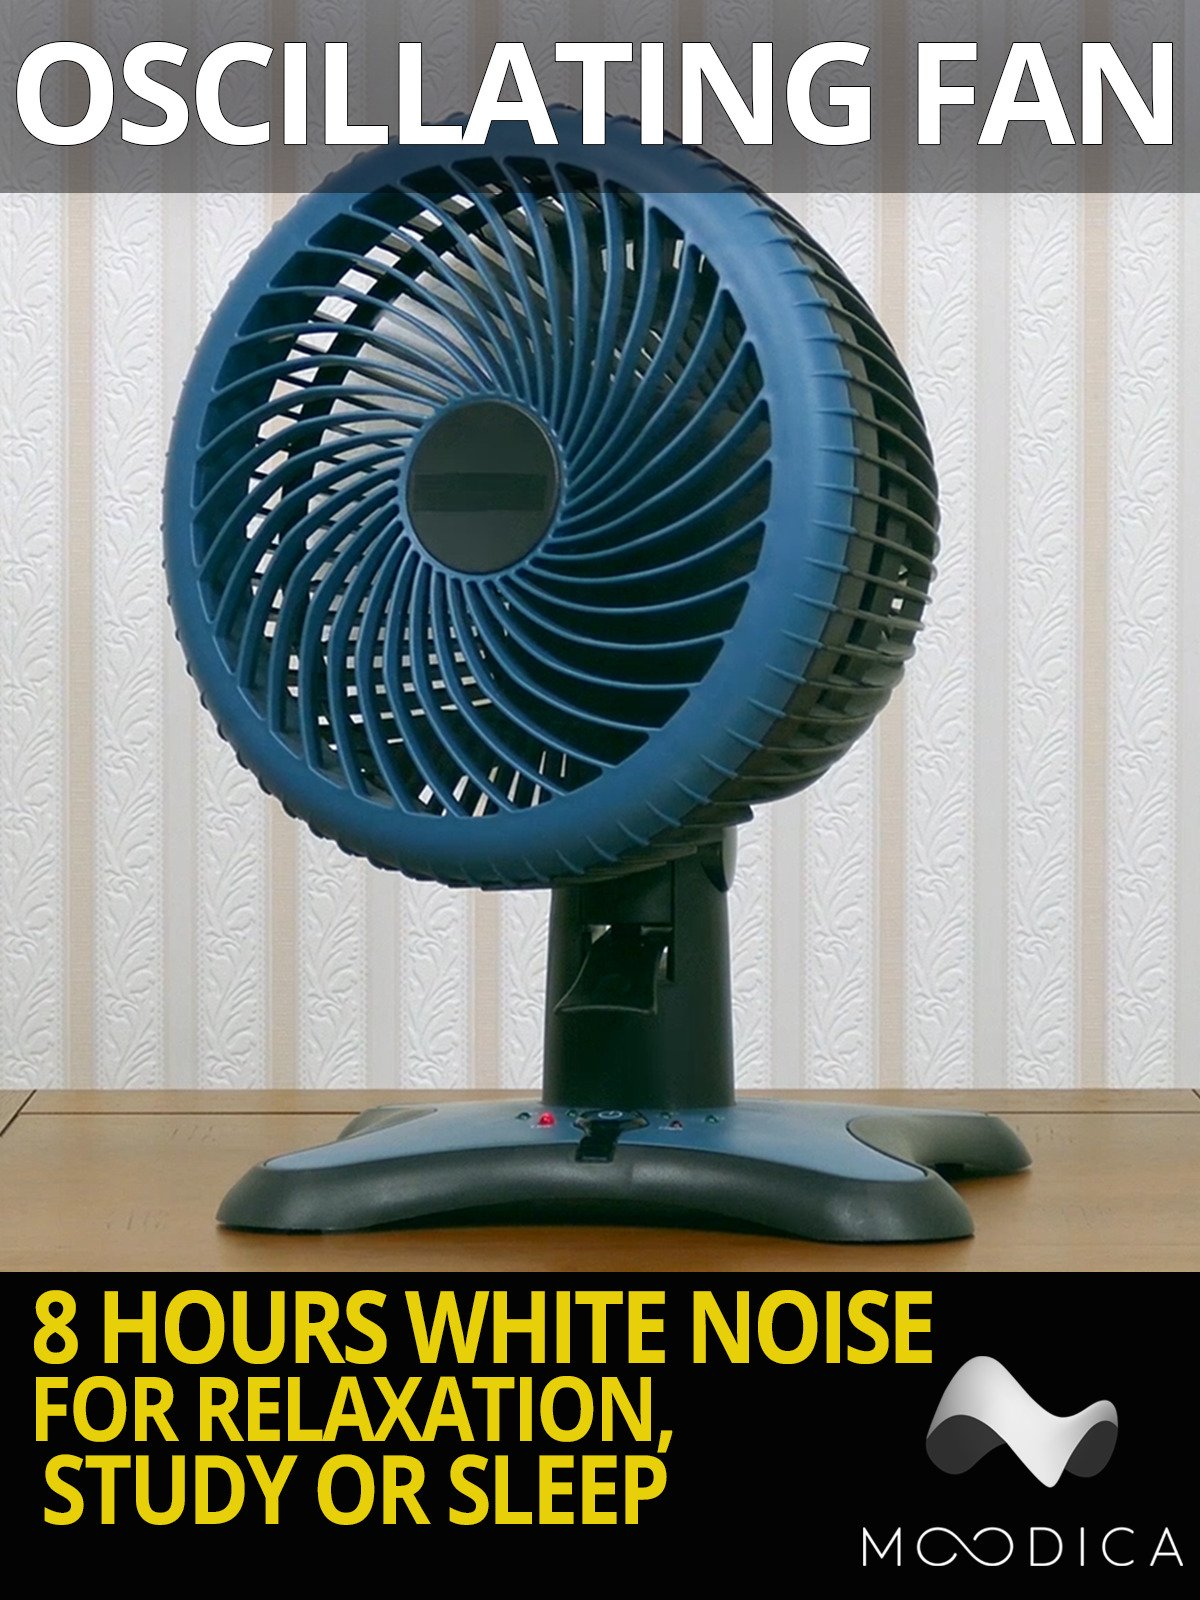 Oscillating Fan: 8 Hours White Noise for Relaxation, Study or Sleep